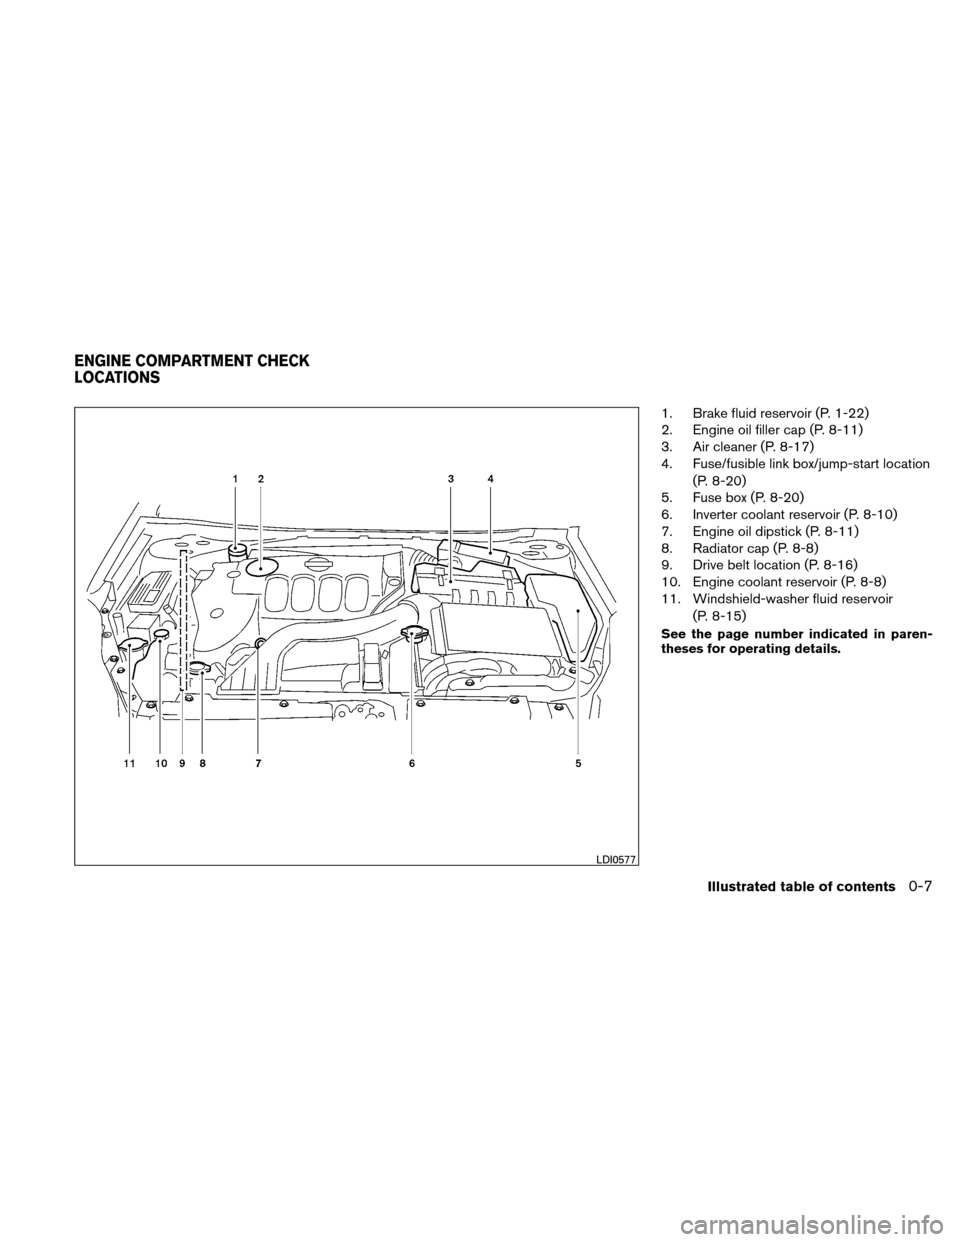 NISSAN ALTIMA HYBRID 2011 L32A / 4.G Owners Manual, Page 26